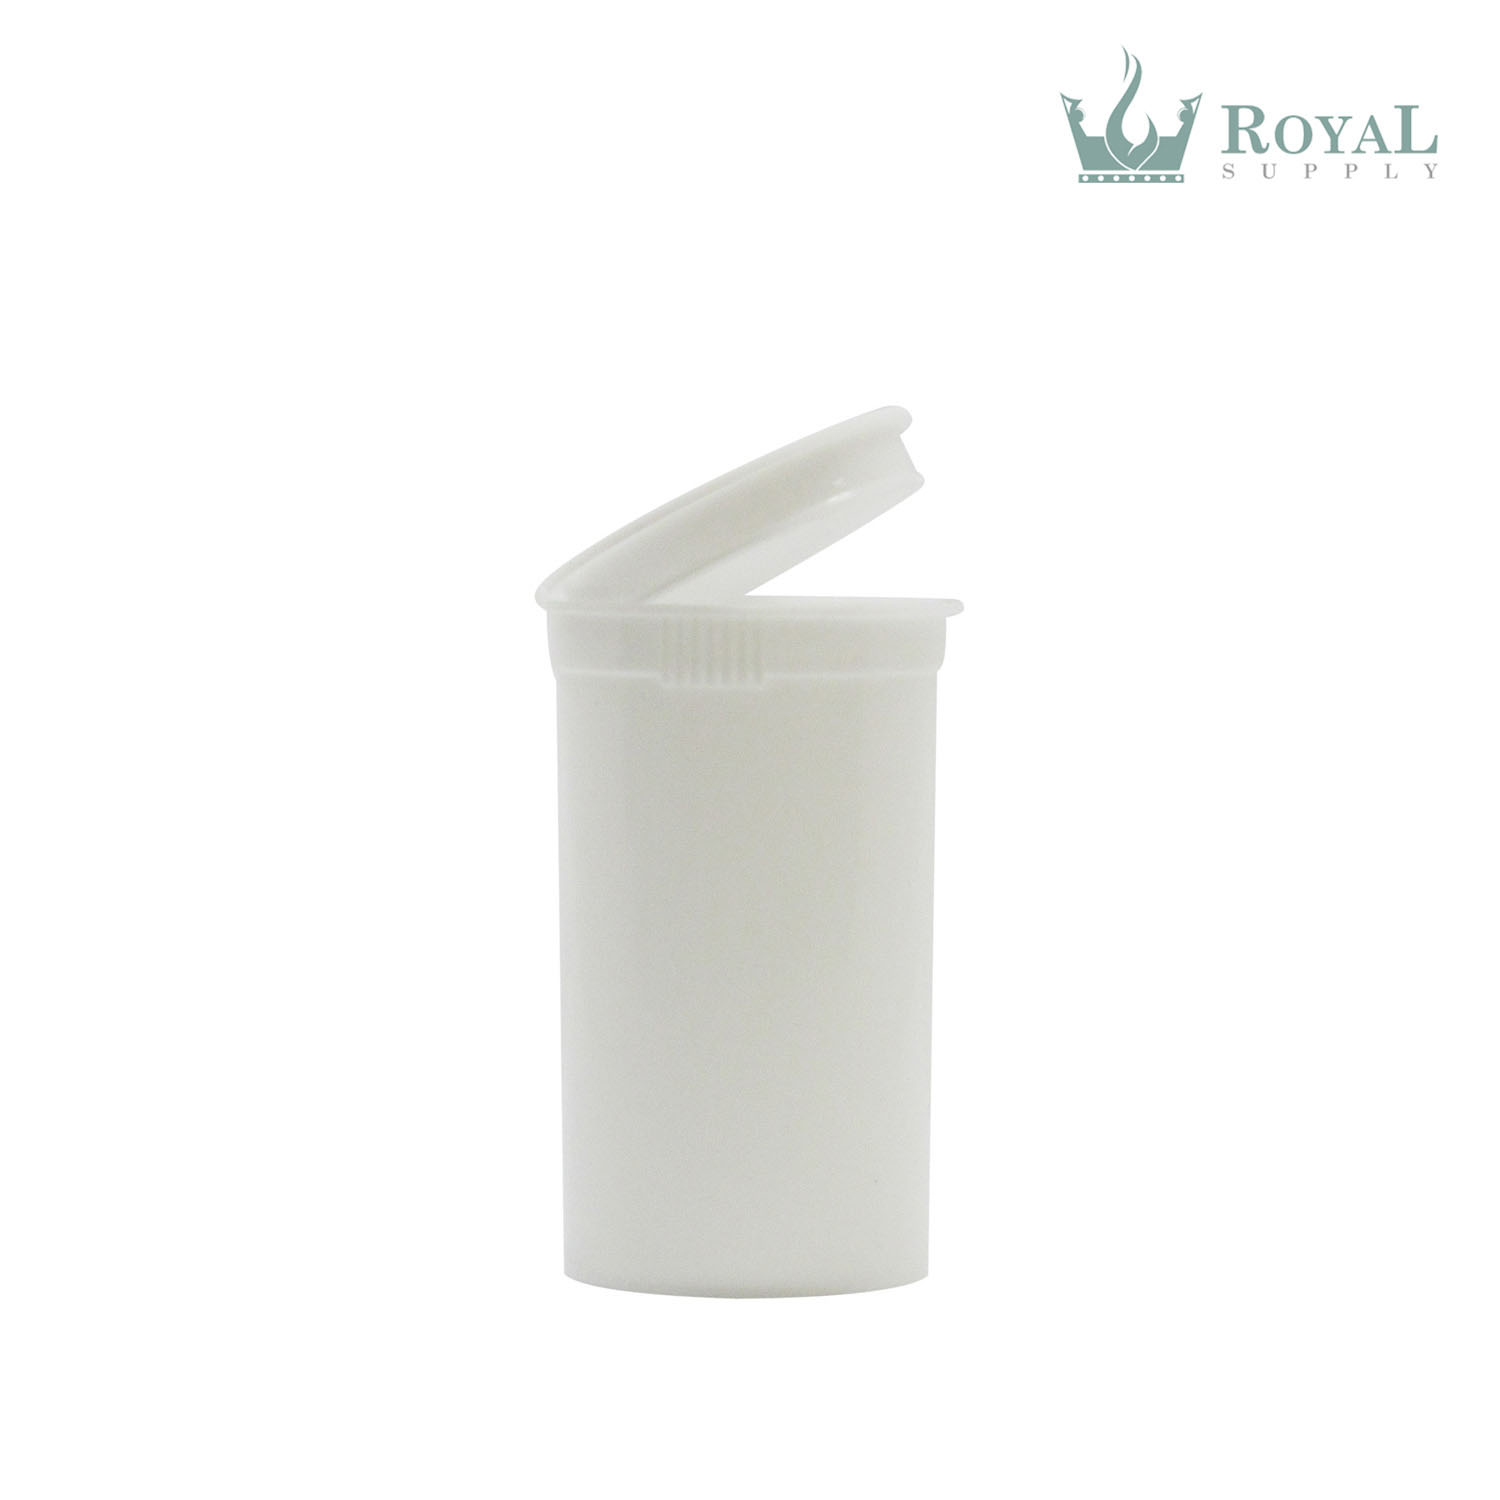 19 Dram High Quality Opaque Child Resistant Pop Top Bottles